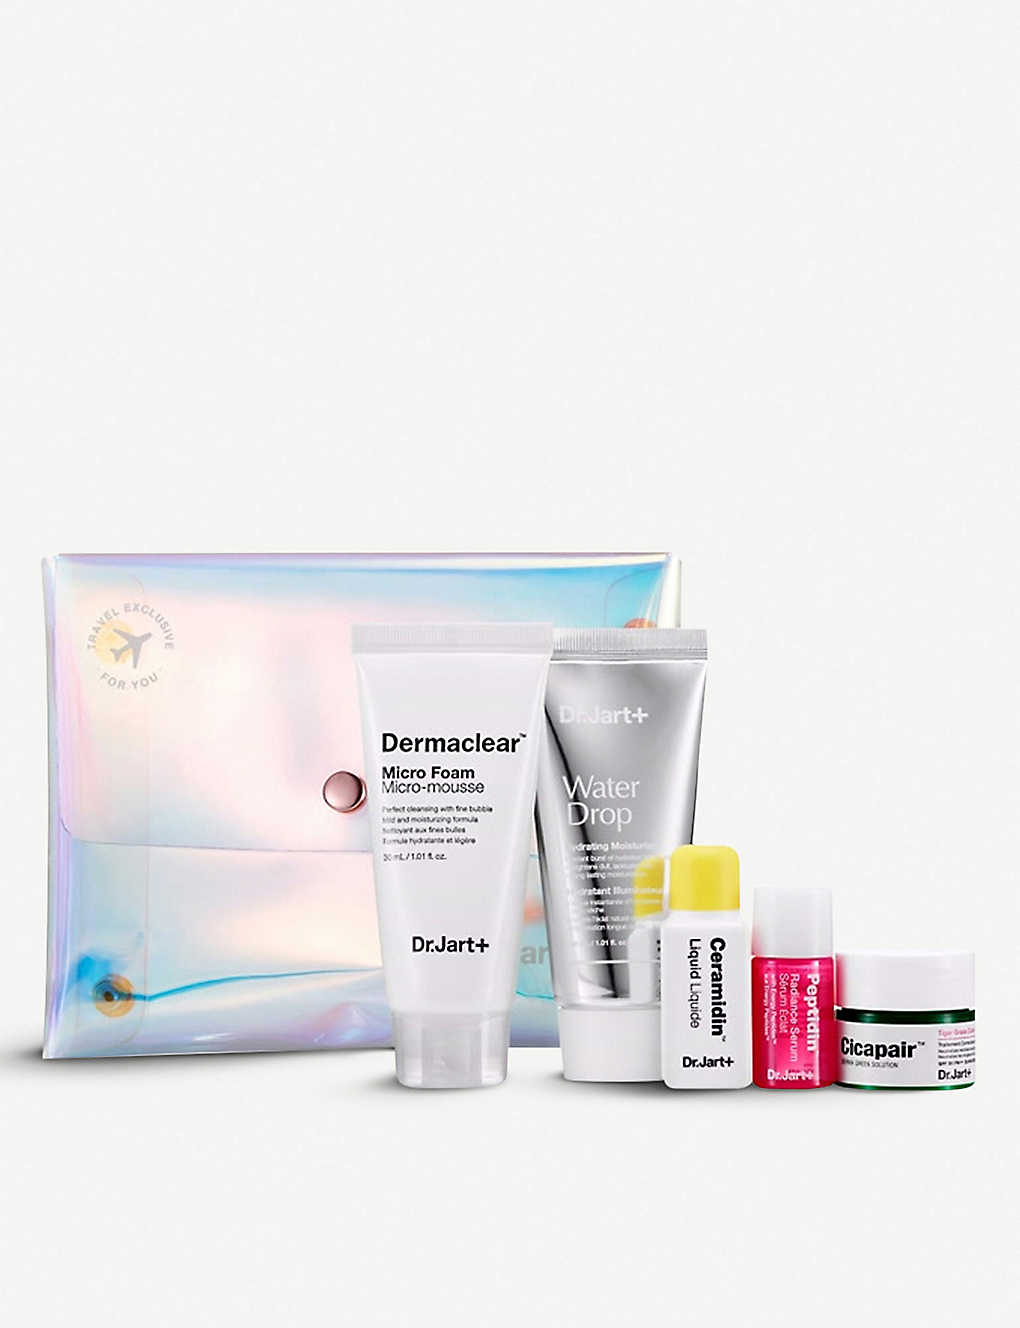 DR JART+ Best Seller Travel Kit